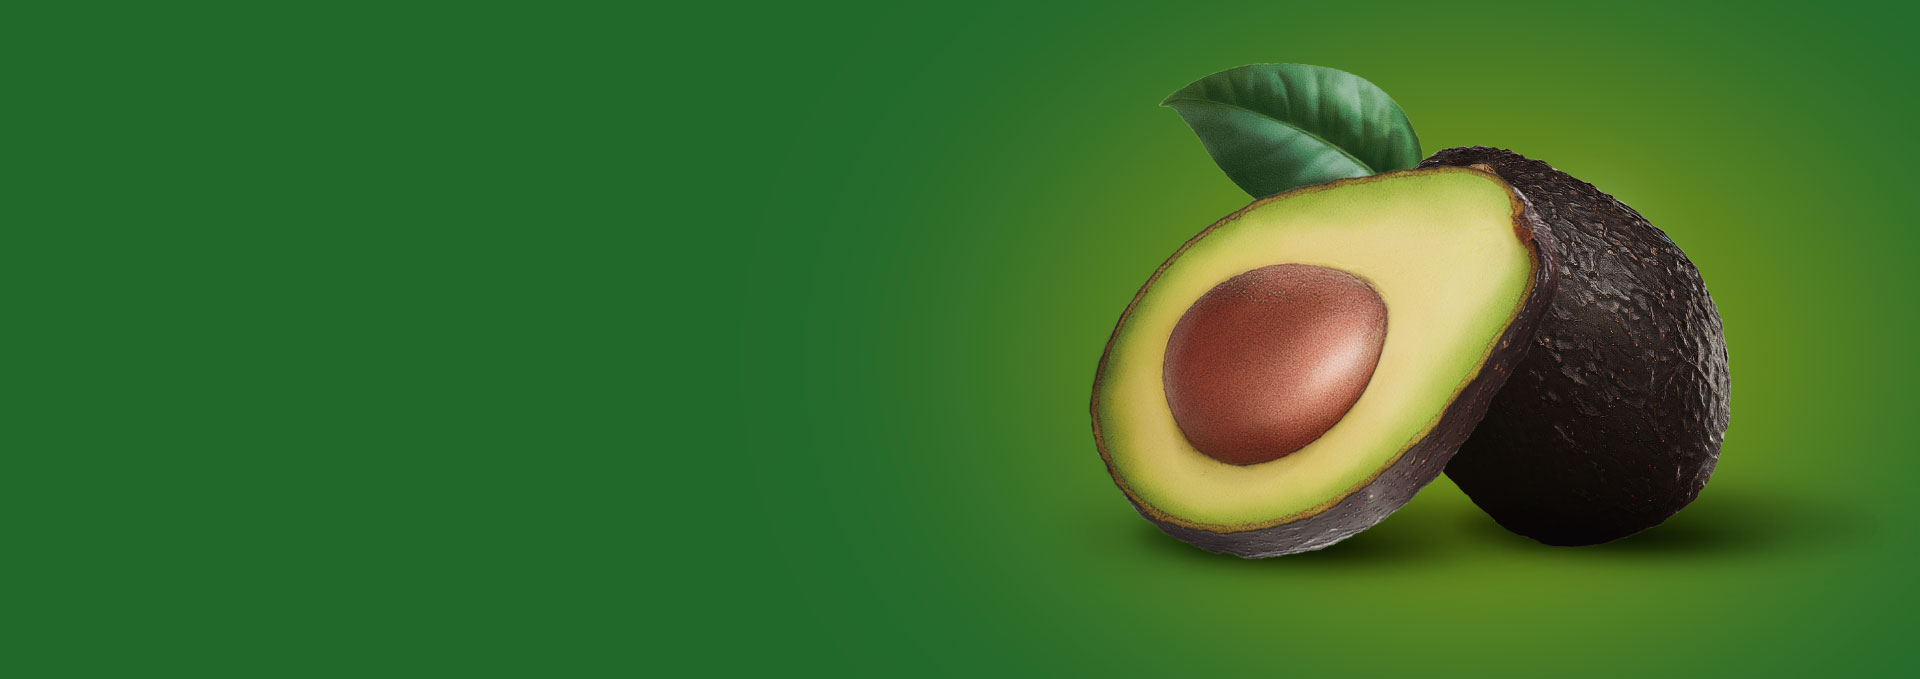 aguacate-banner_02